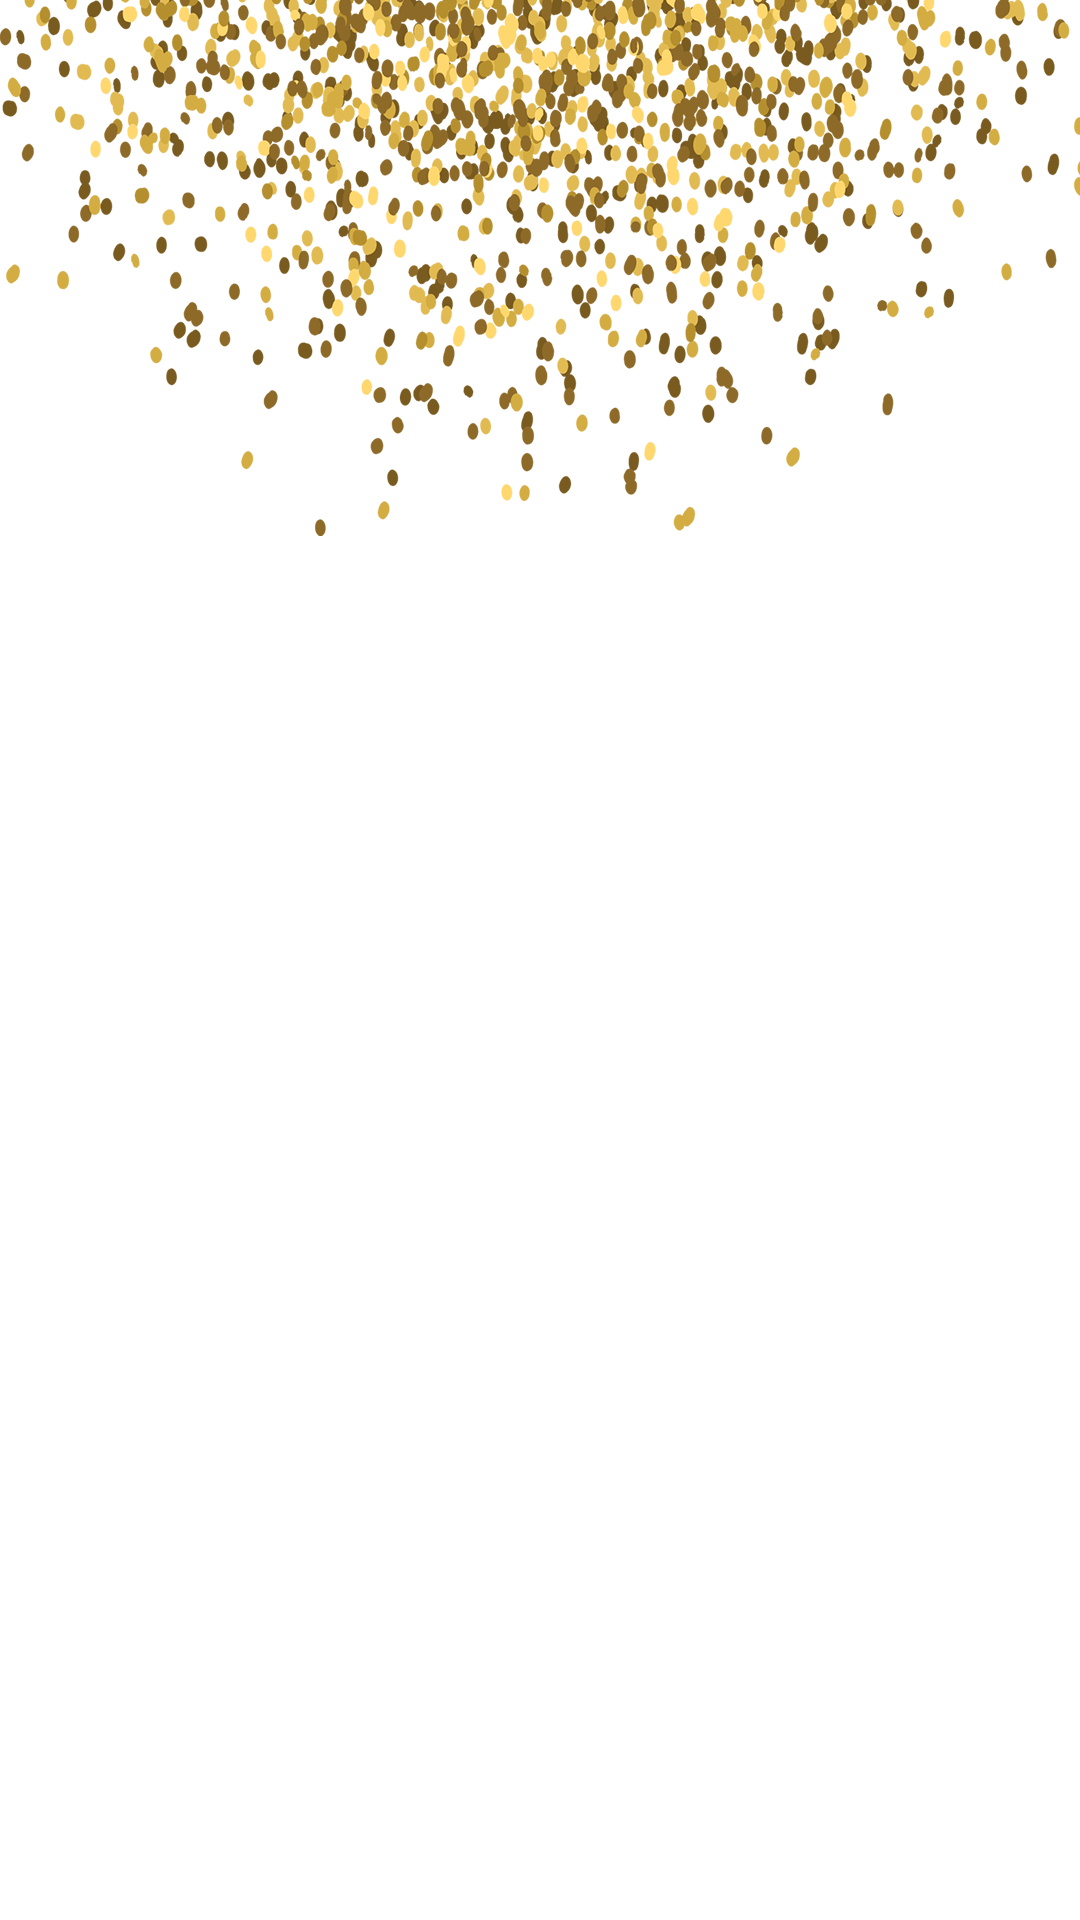 Gold glitter png. Engagement snapchat filter geofilter